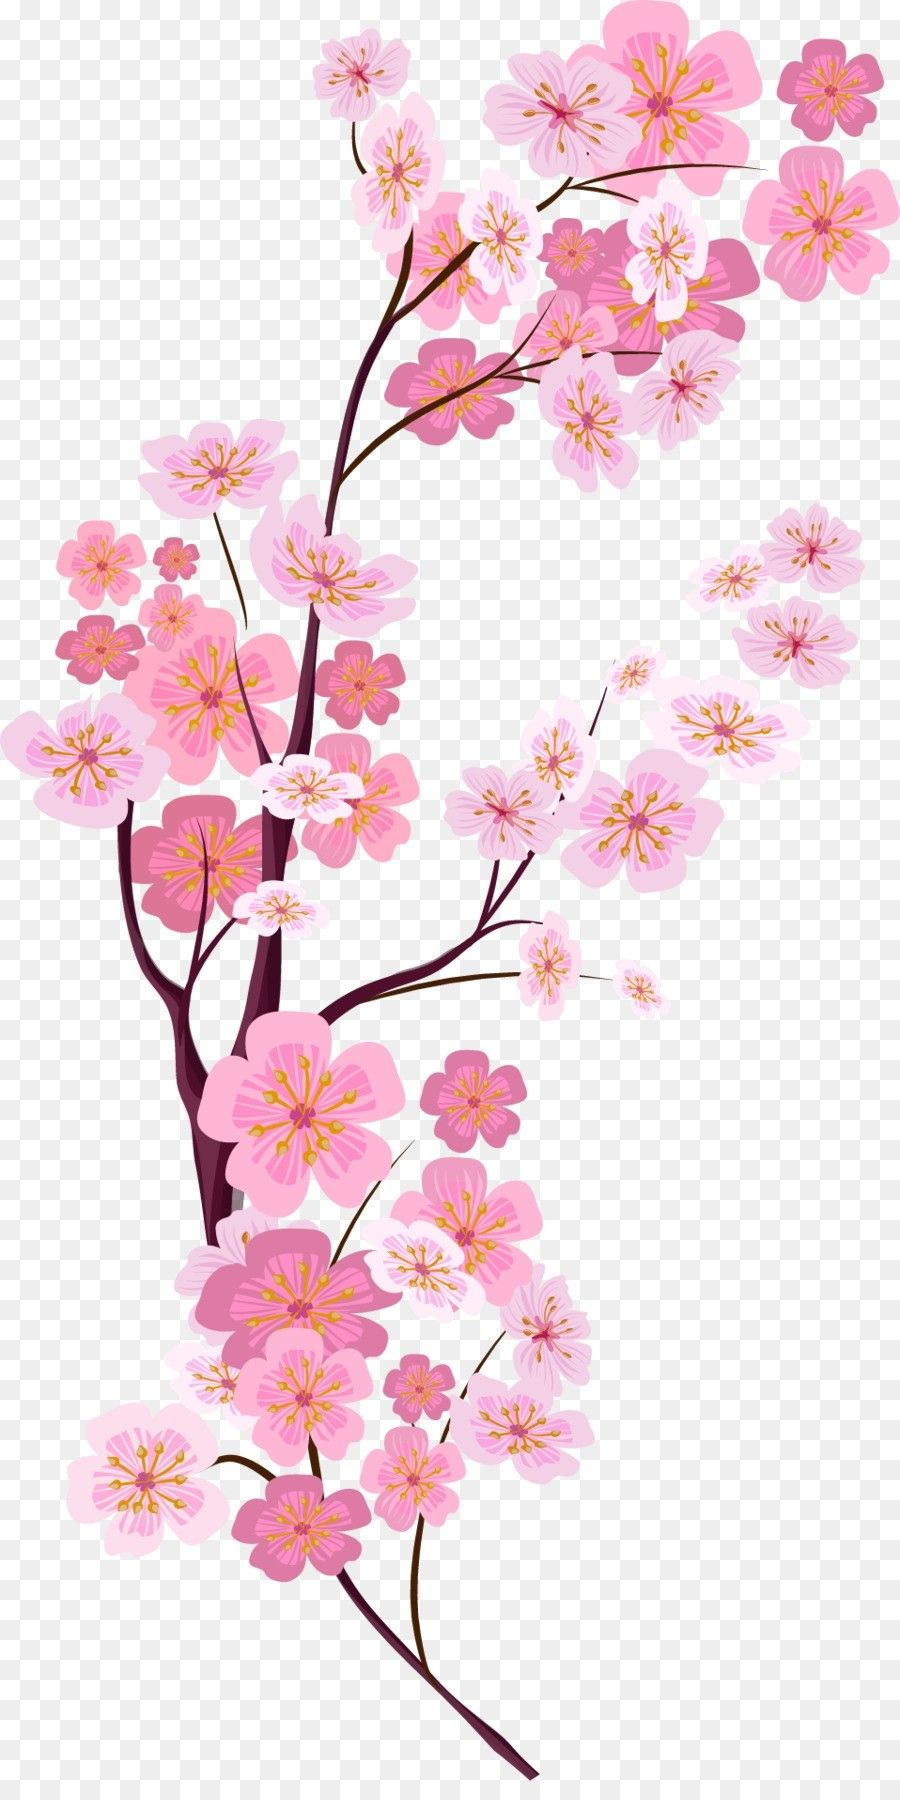 Cherry Blossom Blossom Cherry Flower Pink Png Image With Transparent Background In 2020 Cherry Blossom Background Pink Floral Background Flower Png Images